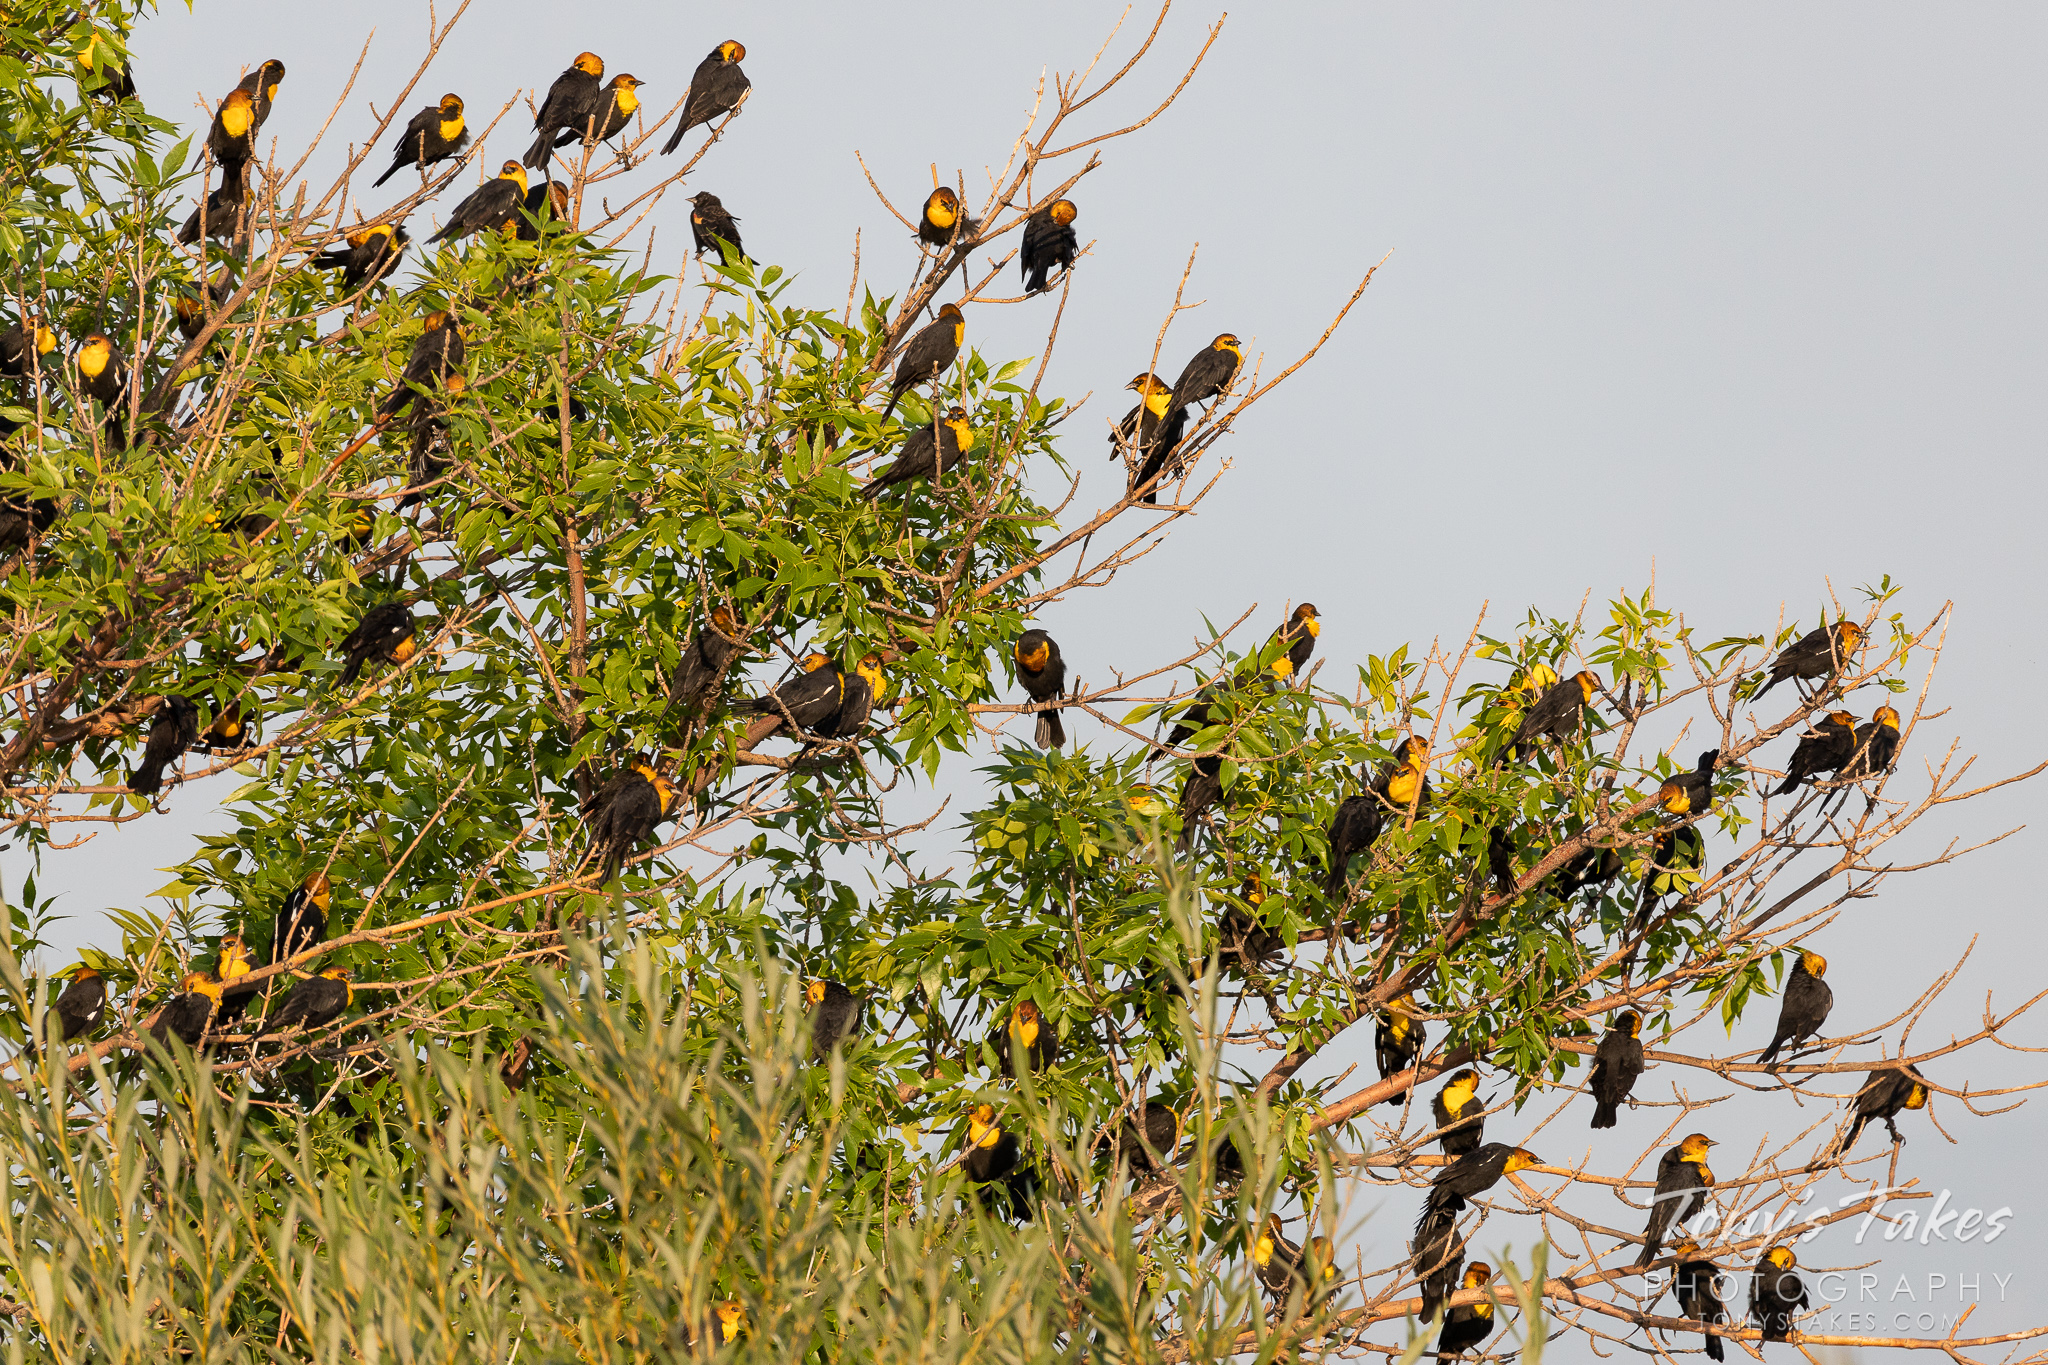 Mass of Yellow-headed Blackbirds take over the trees